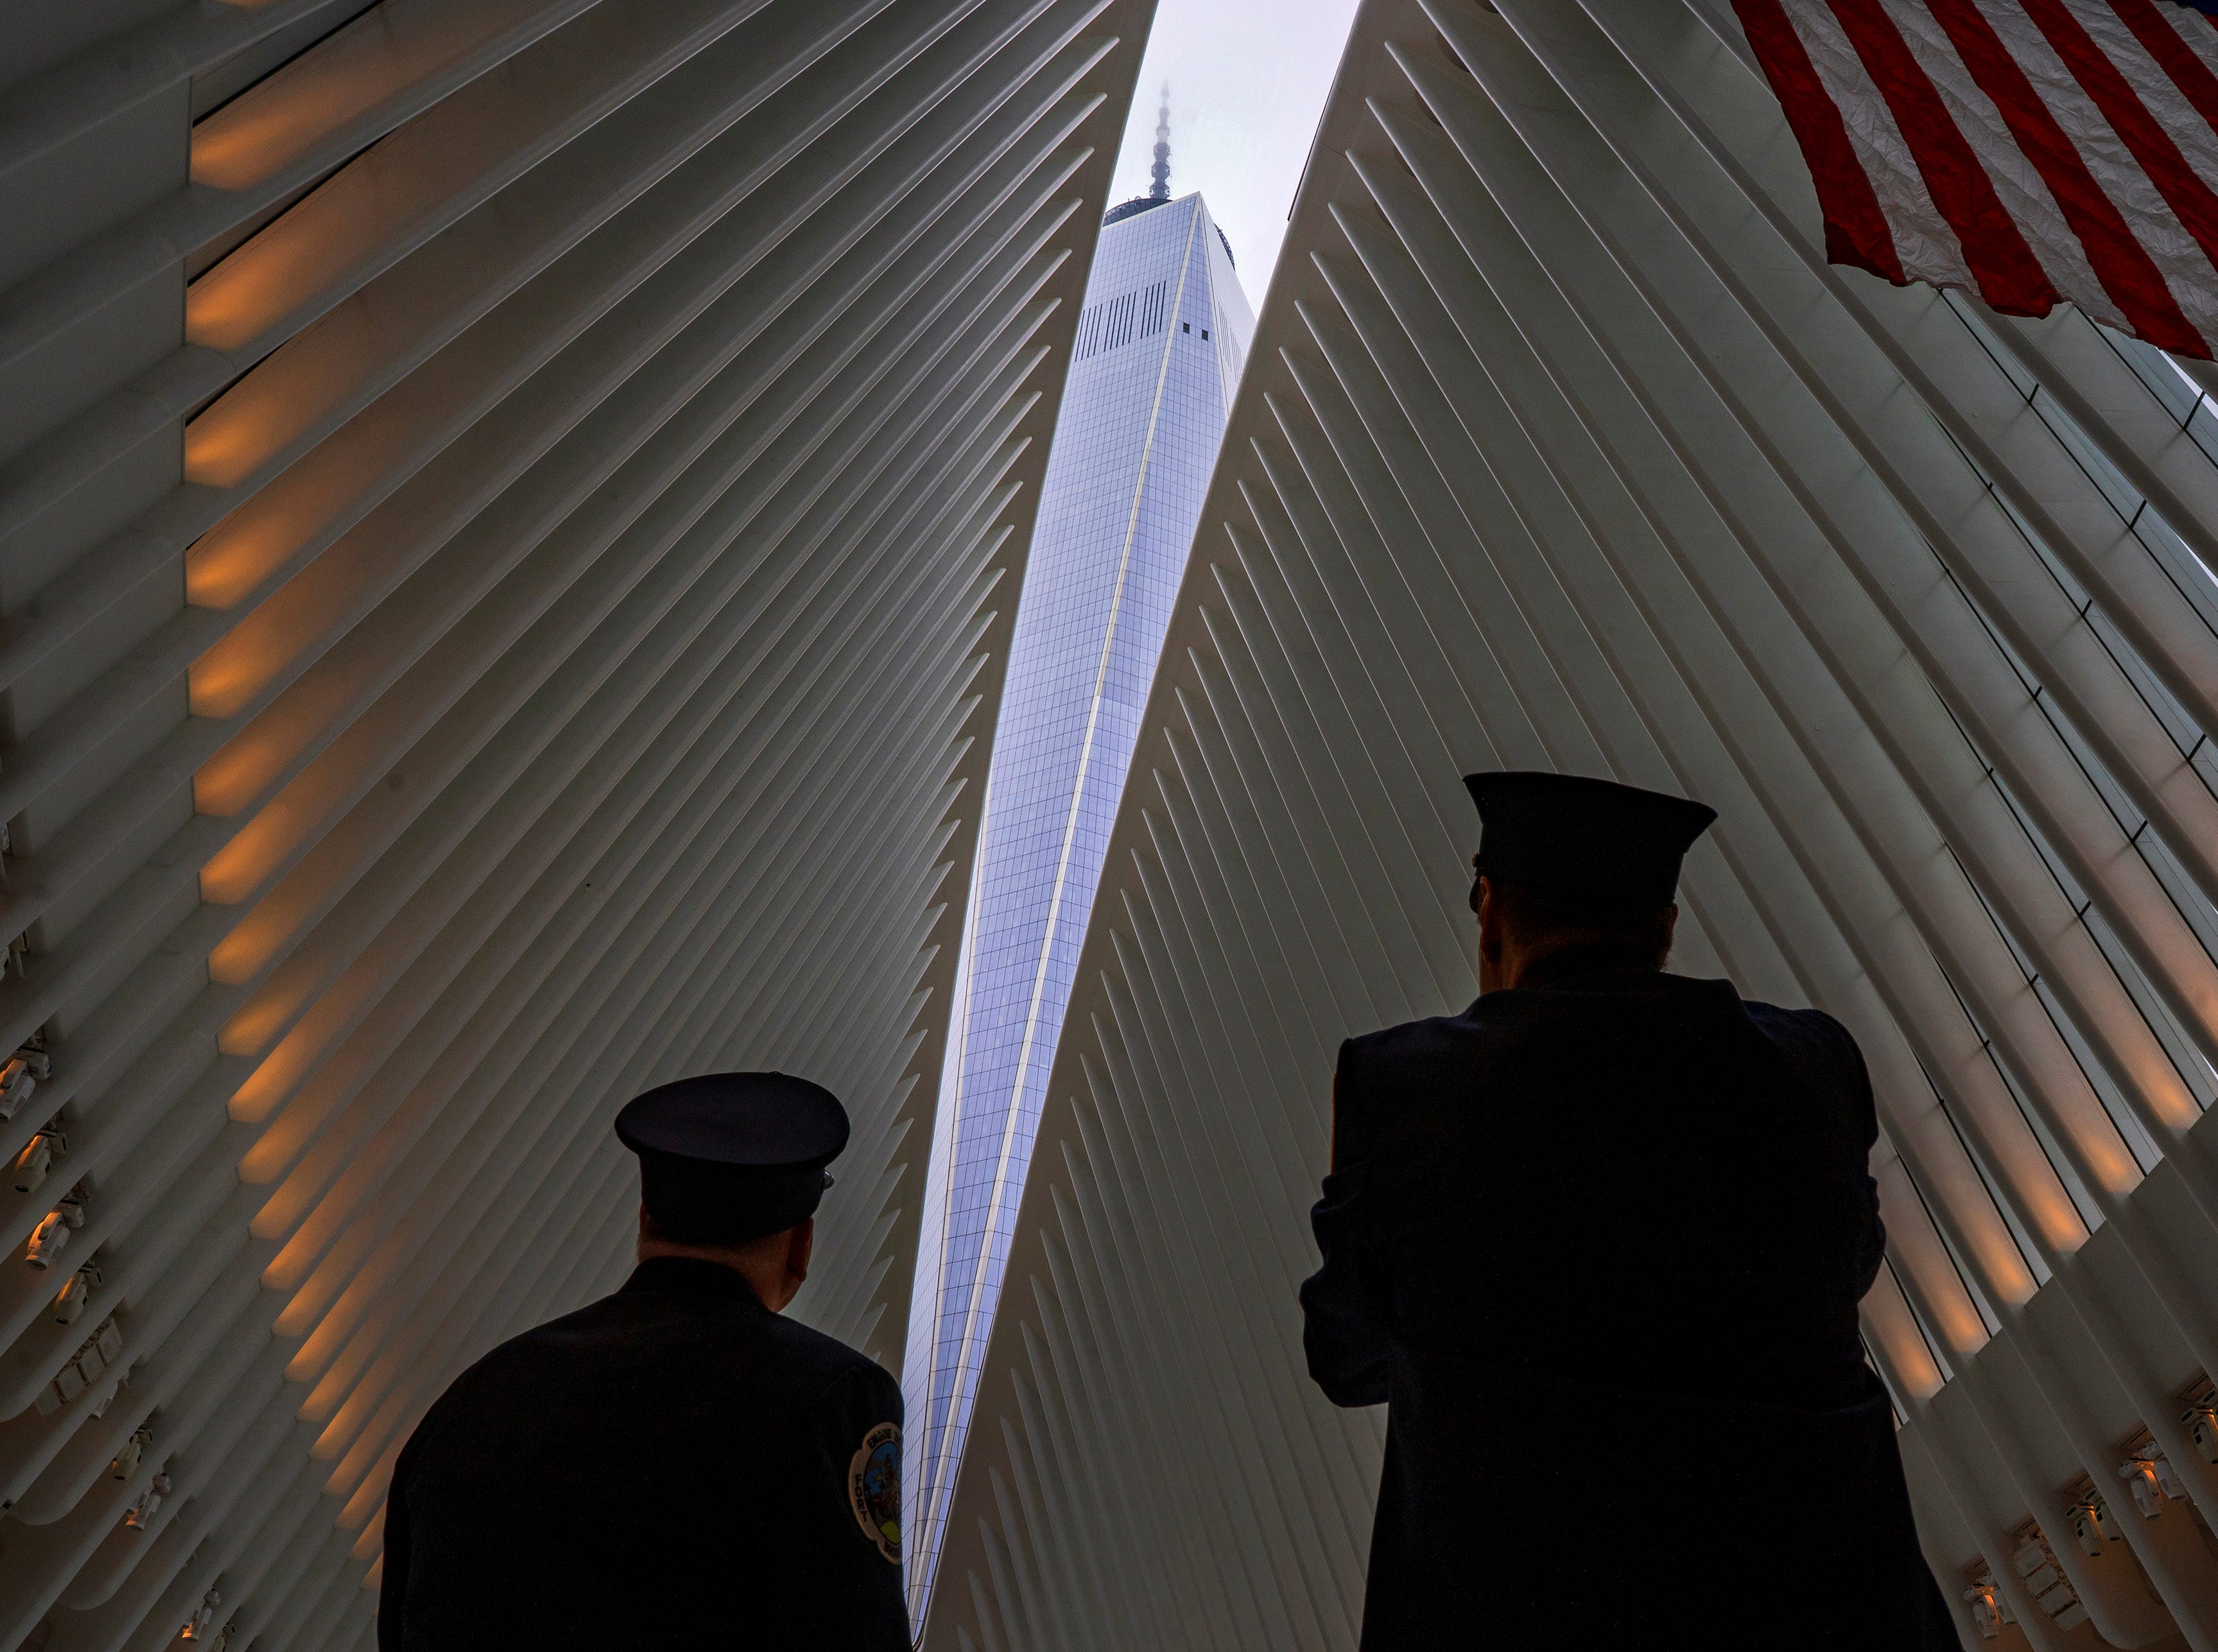 Sept. 11, 2018: Two members of the New York City fire department look towards One World Trade Center through the open ceiling of the Oculus, part of the World Trade Center transportation hub in New York on the anniversary of 9/11 terrorist attacks. The transit hall ceiling window was opened just before 10:28 a.m., marking the moment that the North Tower of the World Trade Center collapsed on Sept. 11, 2001.